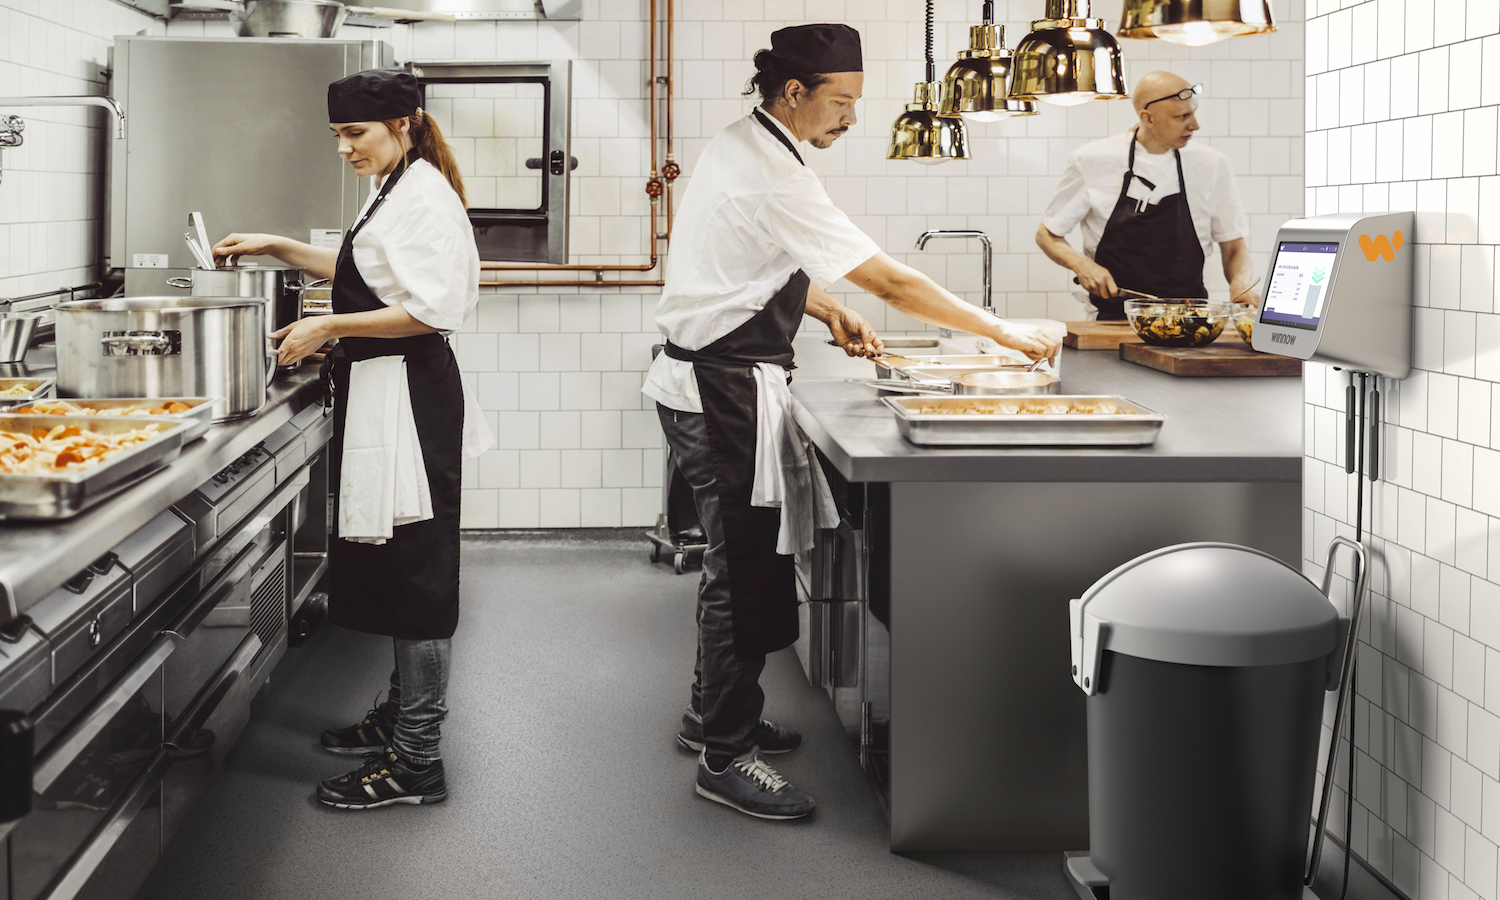 British technology company Winnow Solutions releases a new artificial intelligence that reduces food waste in commercial kitchens and food businesses.